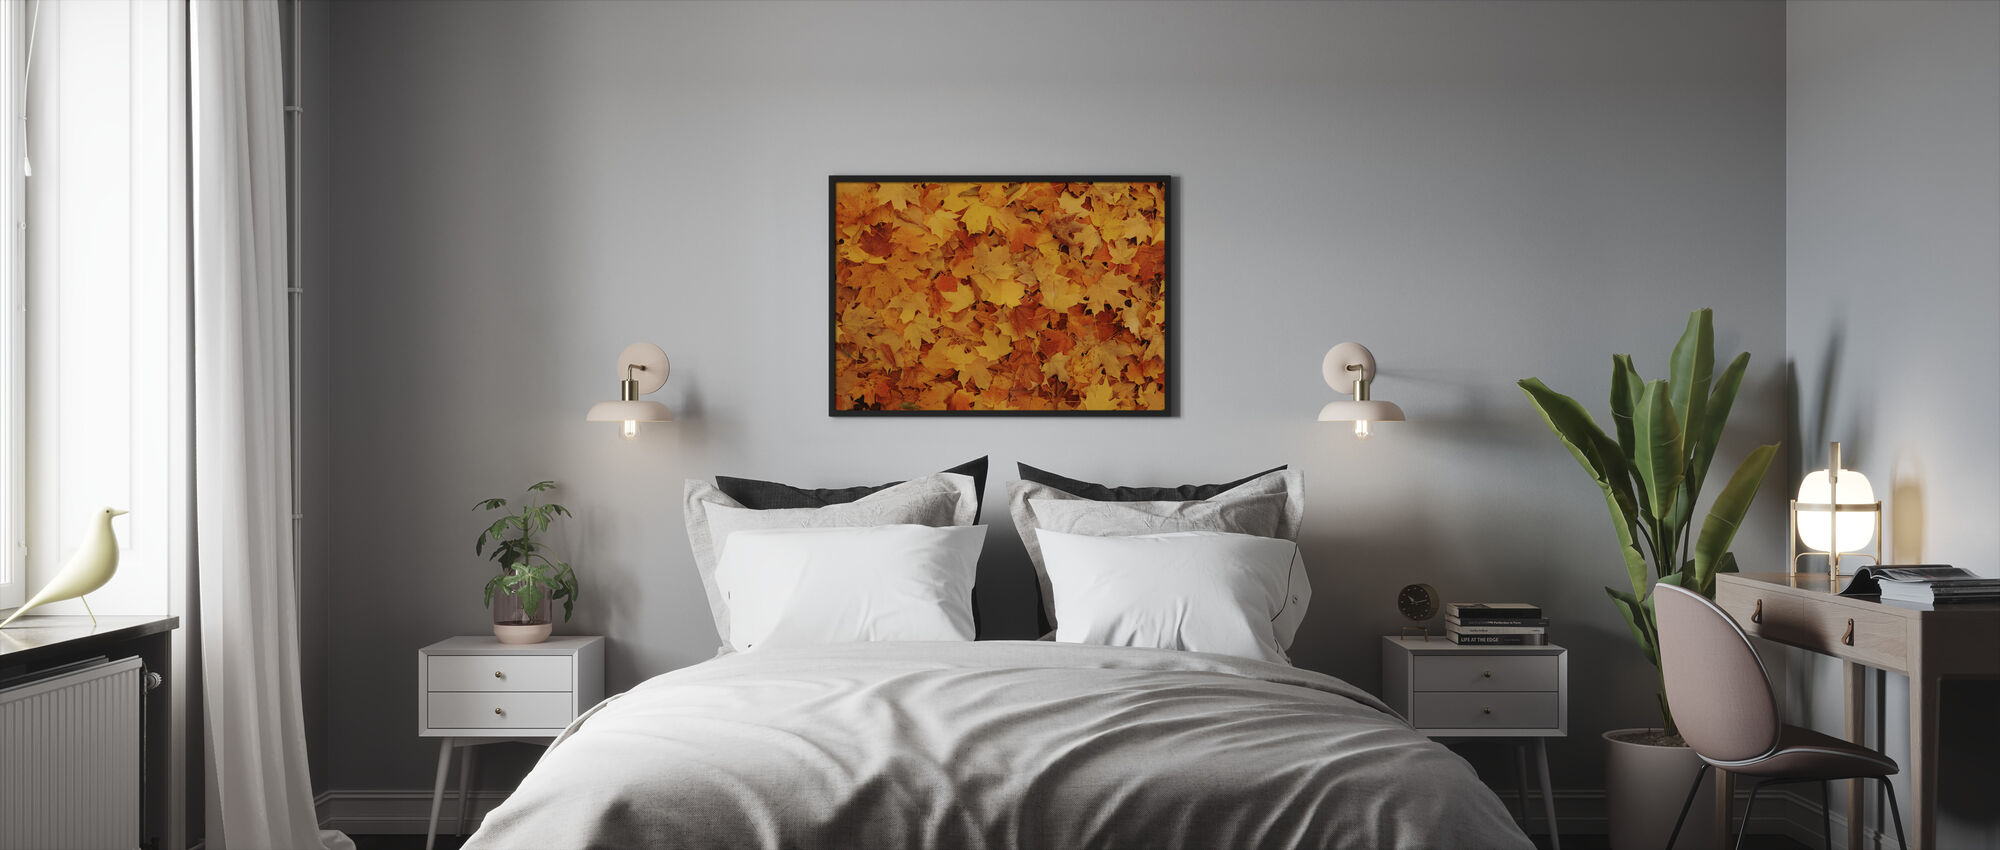 Bed of Autumn Maple Leaves - Framed print - Bedroom